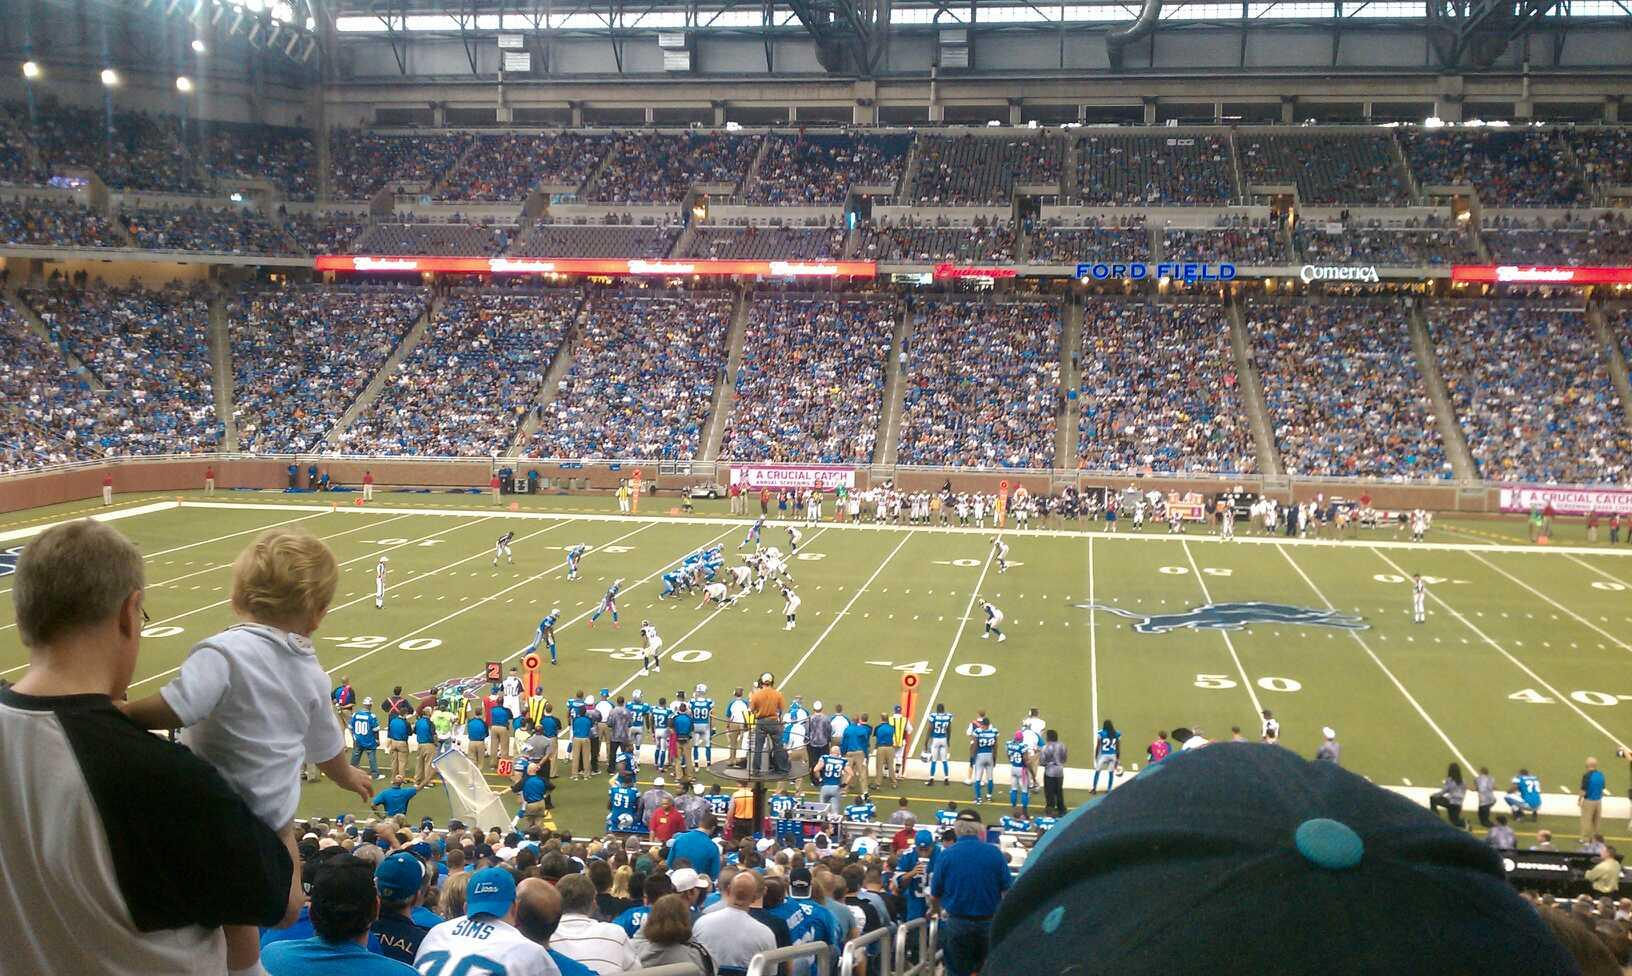 Ford Field Section 107 Row 21 Seat 1